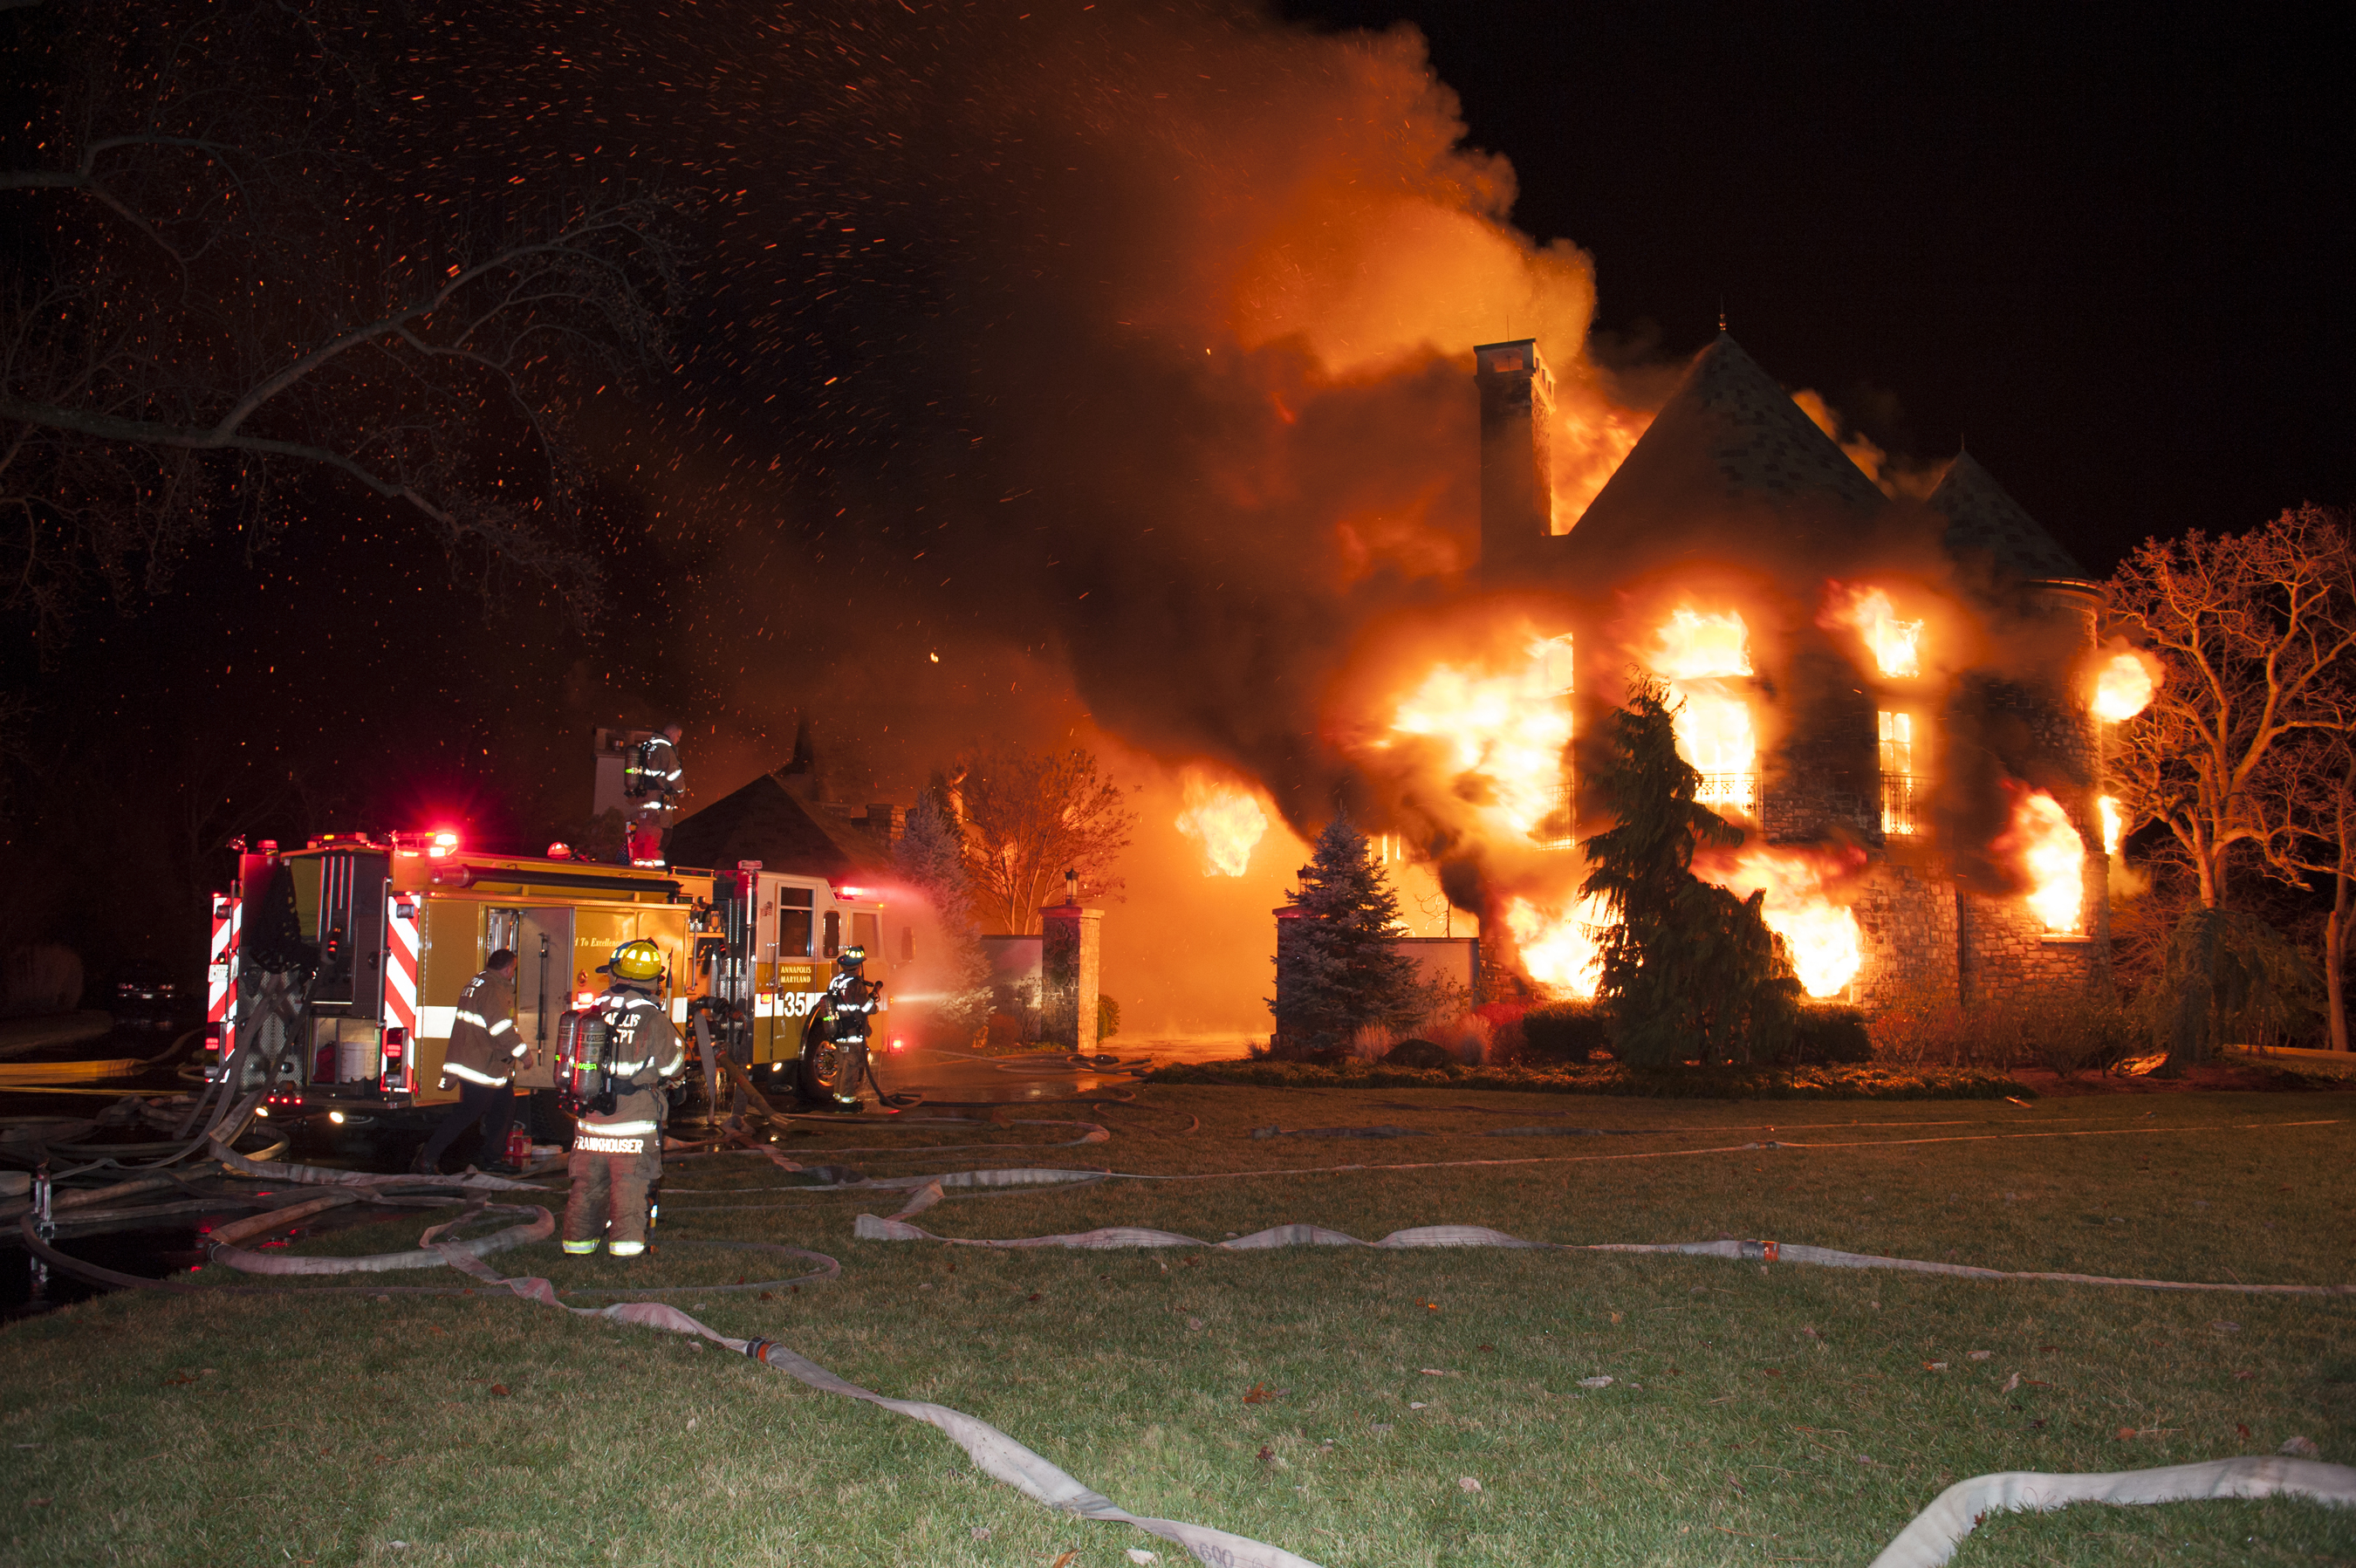 Woman turns to advocacy after losing 6 relatives in huge Md. fire